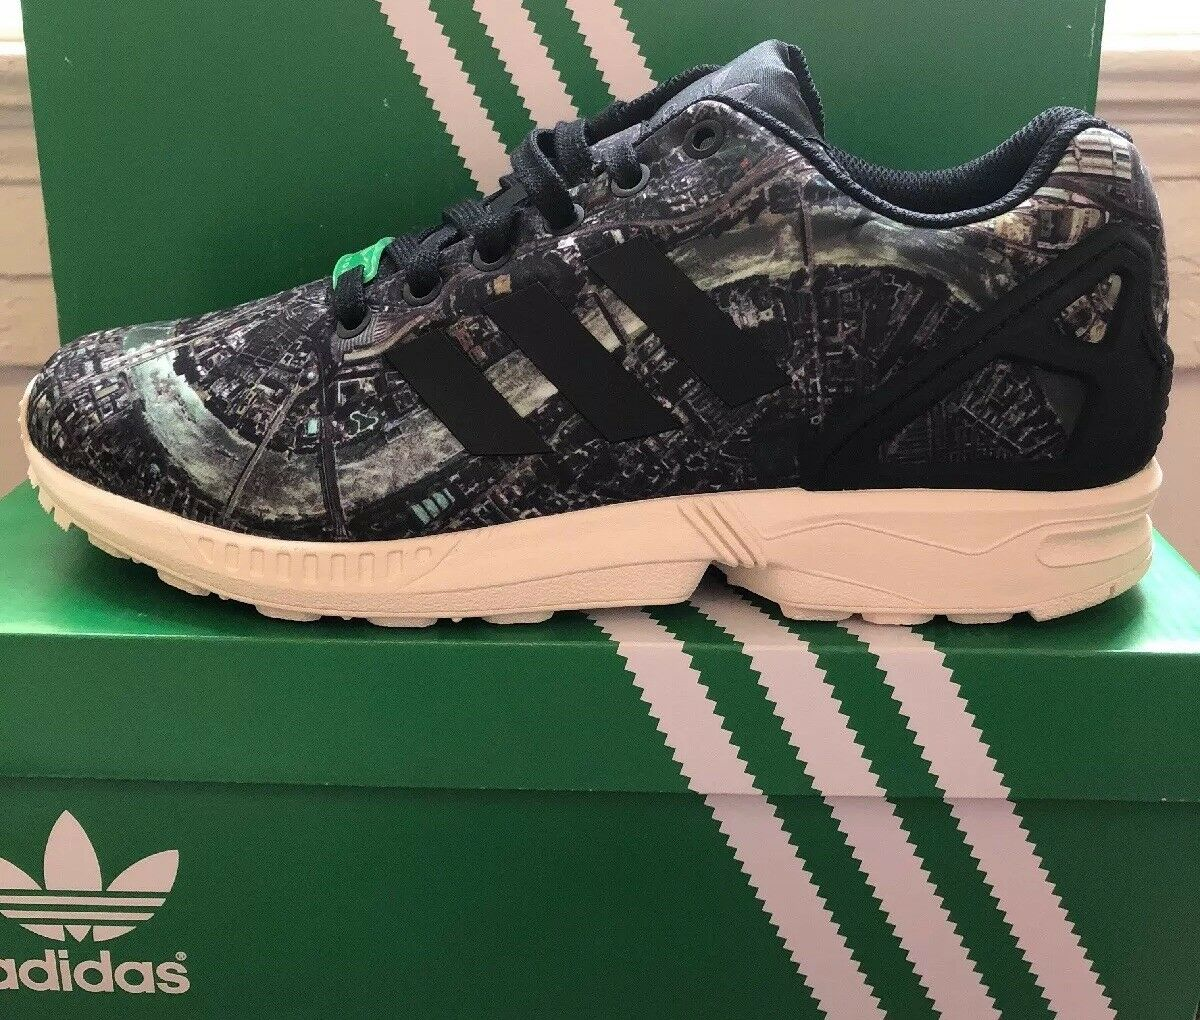 ADIDAS ZX FLUX LONDON LIMITED Sz 9.5 SUPER RARE ONLY ONLY ONLY 150 PAIRS RELEASED M19926 d8ade2